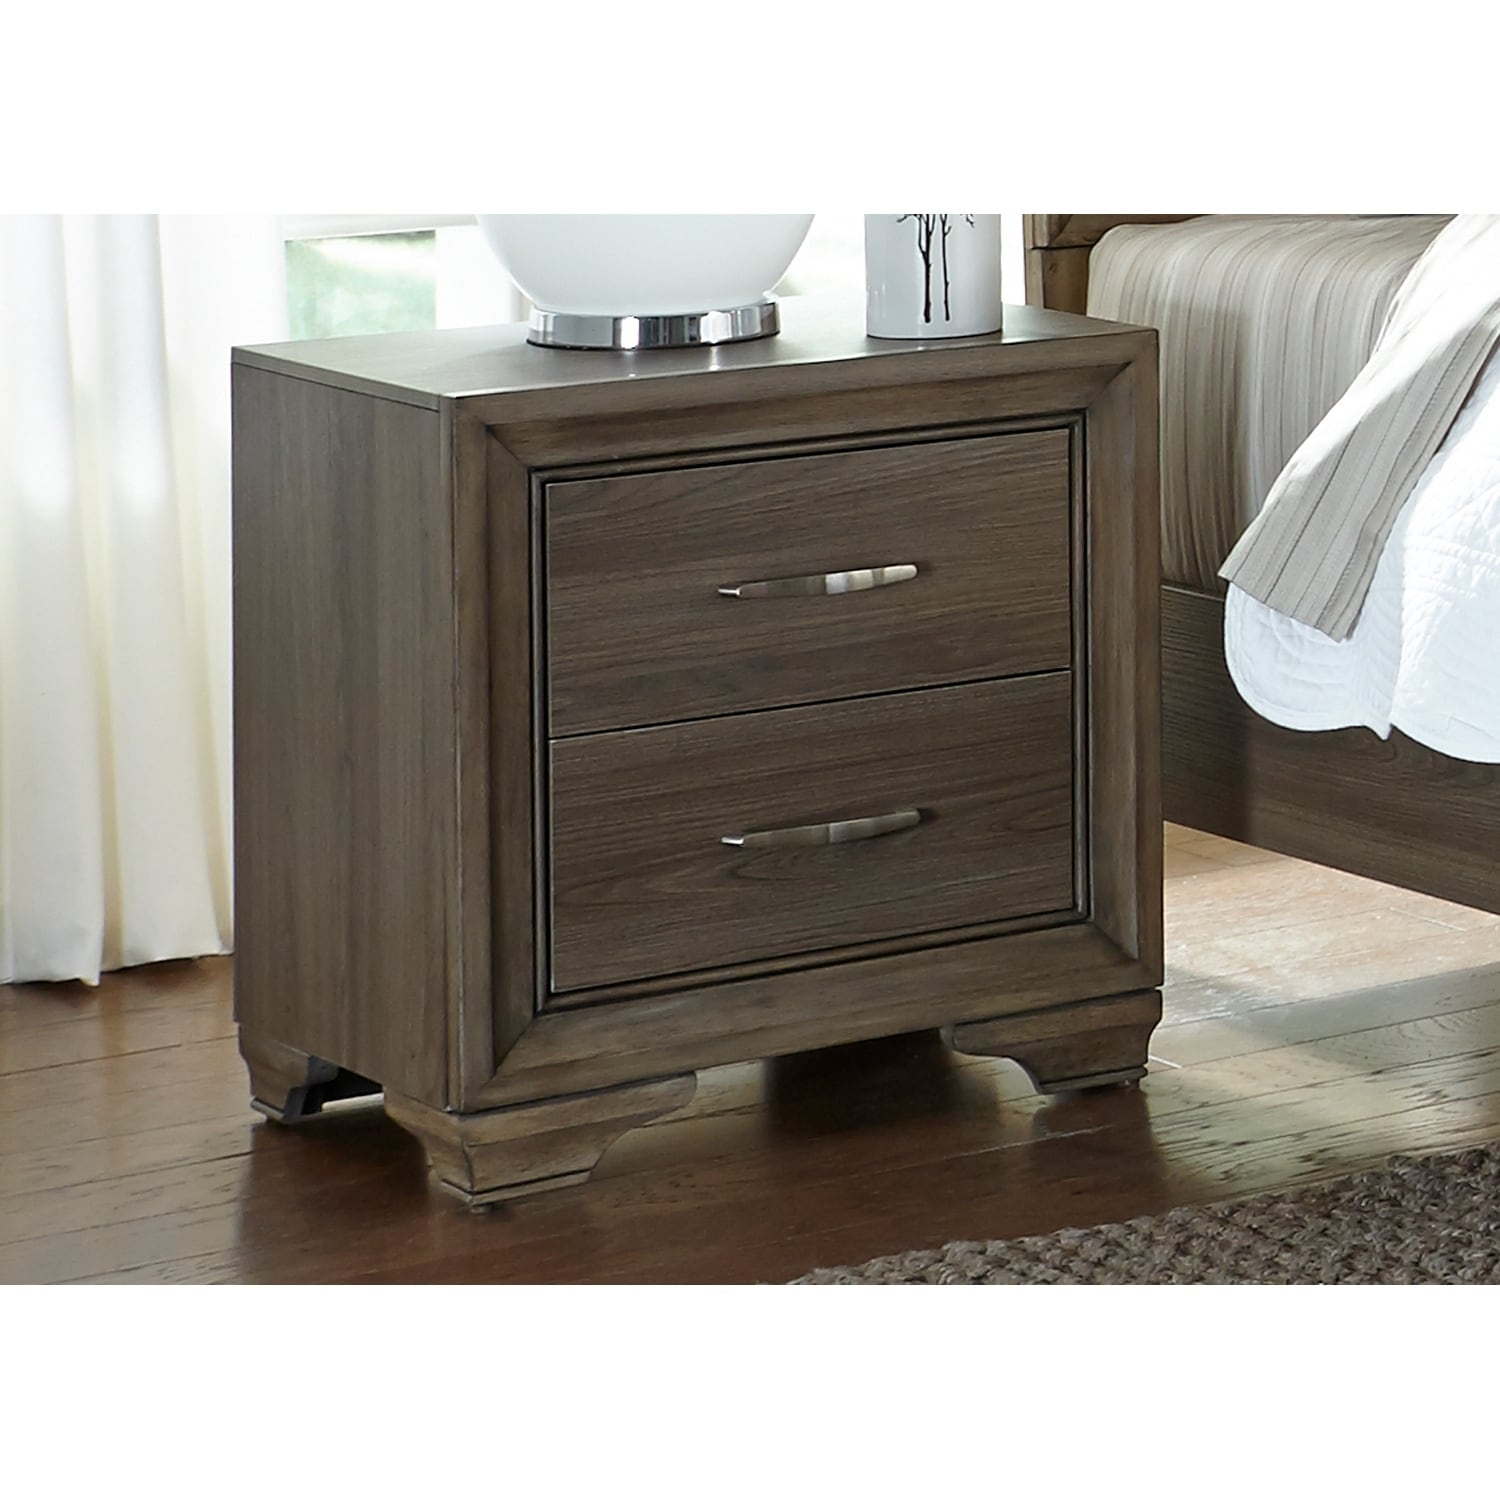 Awesome Shop Hartley Grey Wash 2 Drawer Nightstand Ships To Canada Pdpeps Interior Chair Design Pdpepsorg